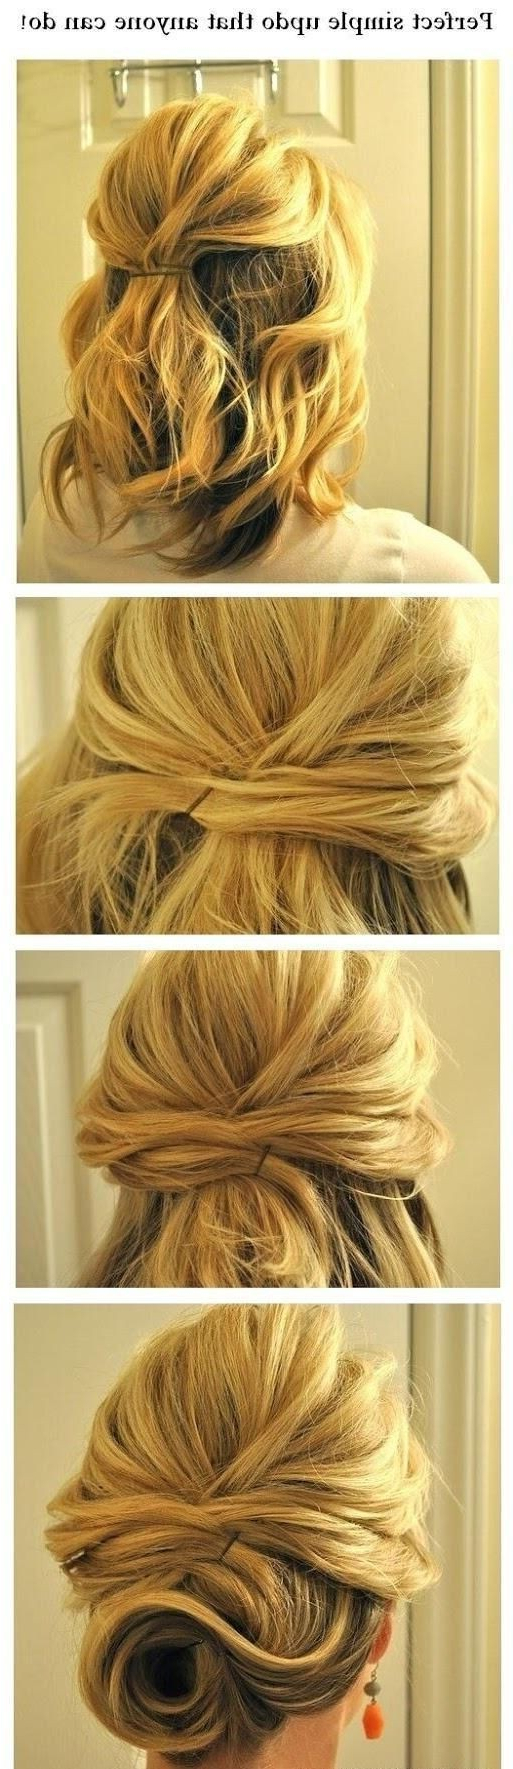 Well Known Twisted Low Bun Hairstyles For Prom Inside 12 Trendy Low Bun Updo Hairstyles Tutorials: Easy Cute – Popular (View 12 of 20)